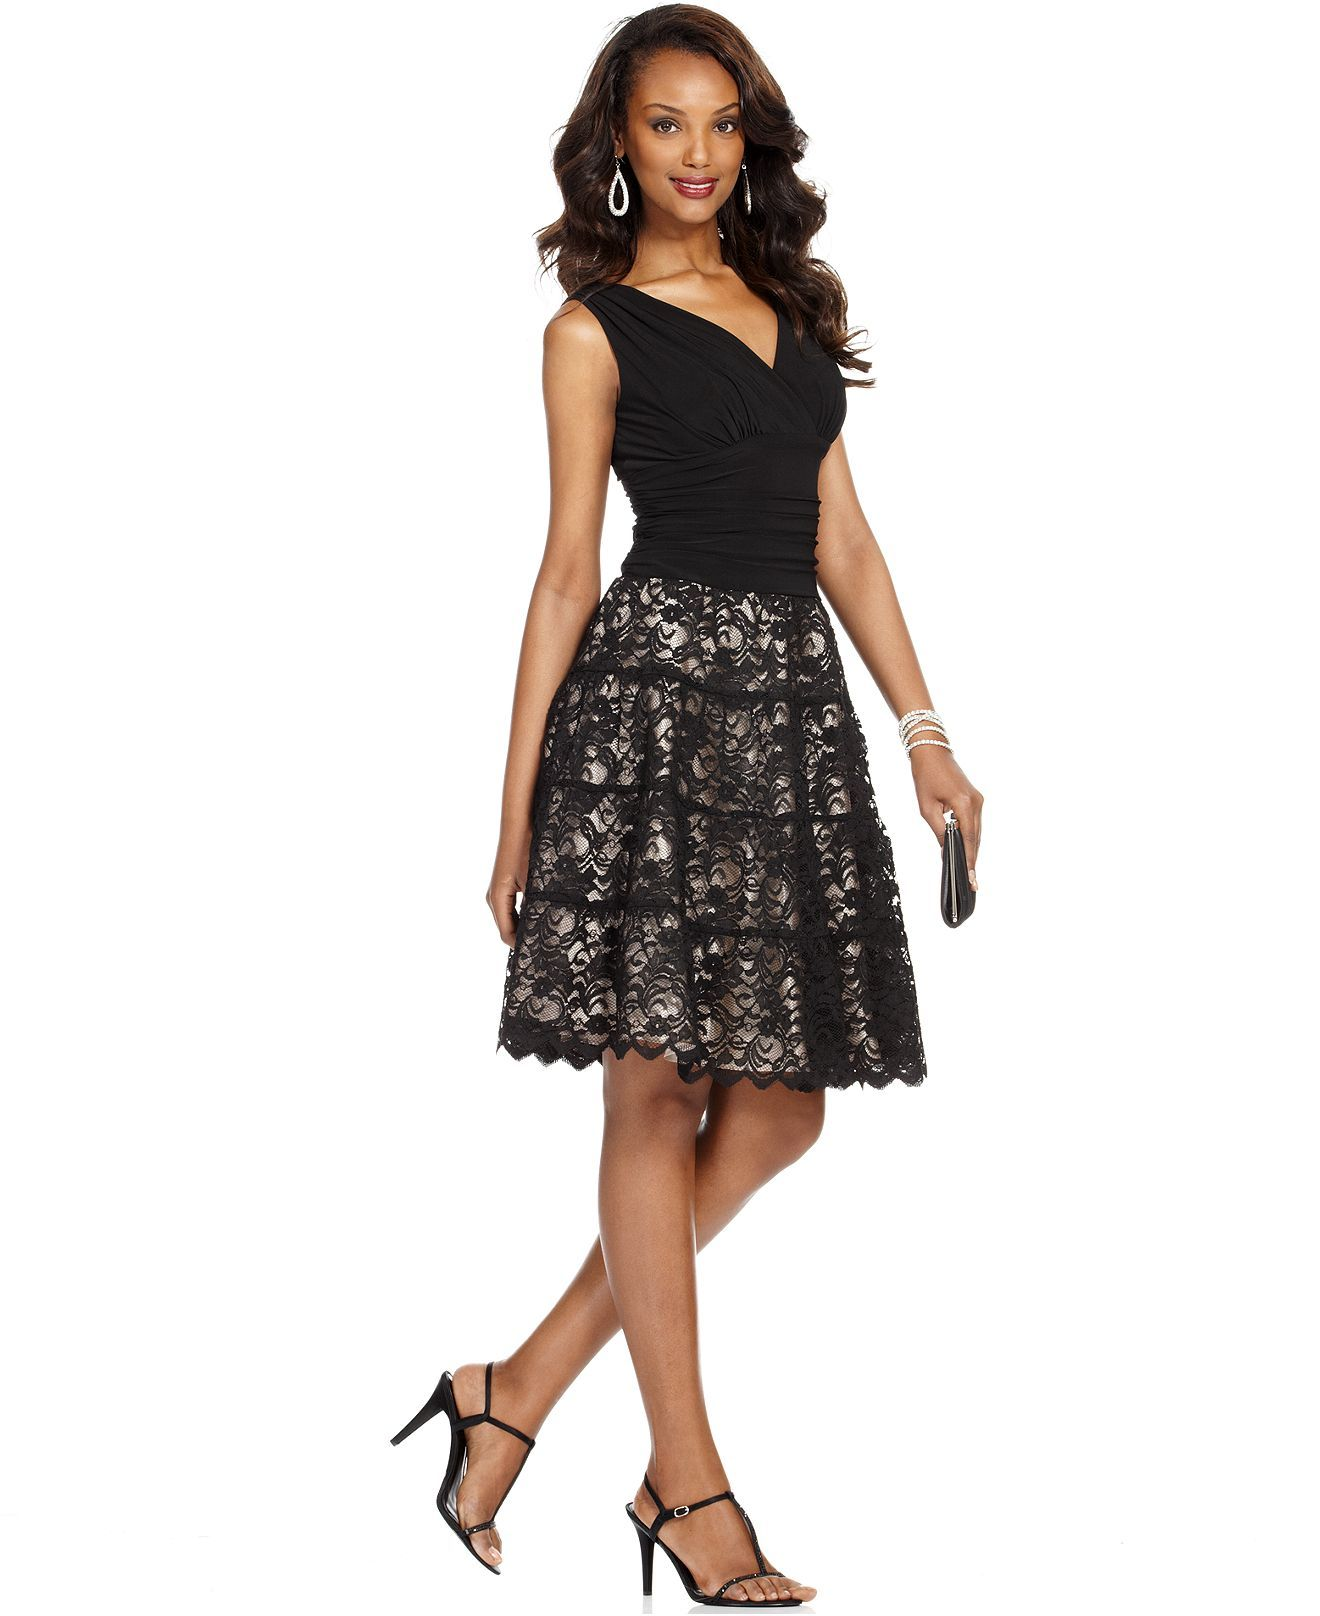 SL Fashions Lace Ruched A-Line Dress | Petite dresses, Classy and ...